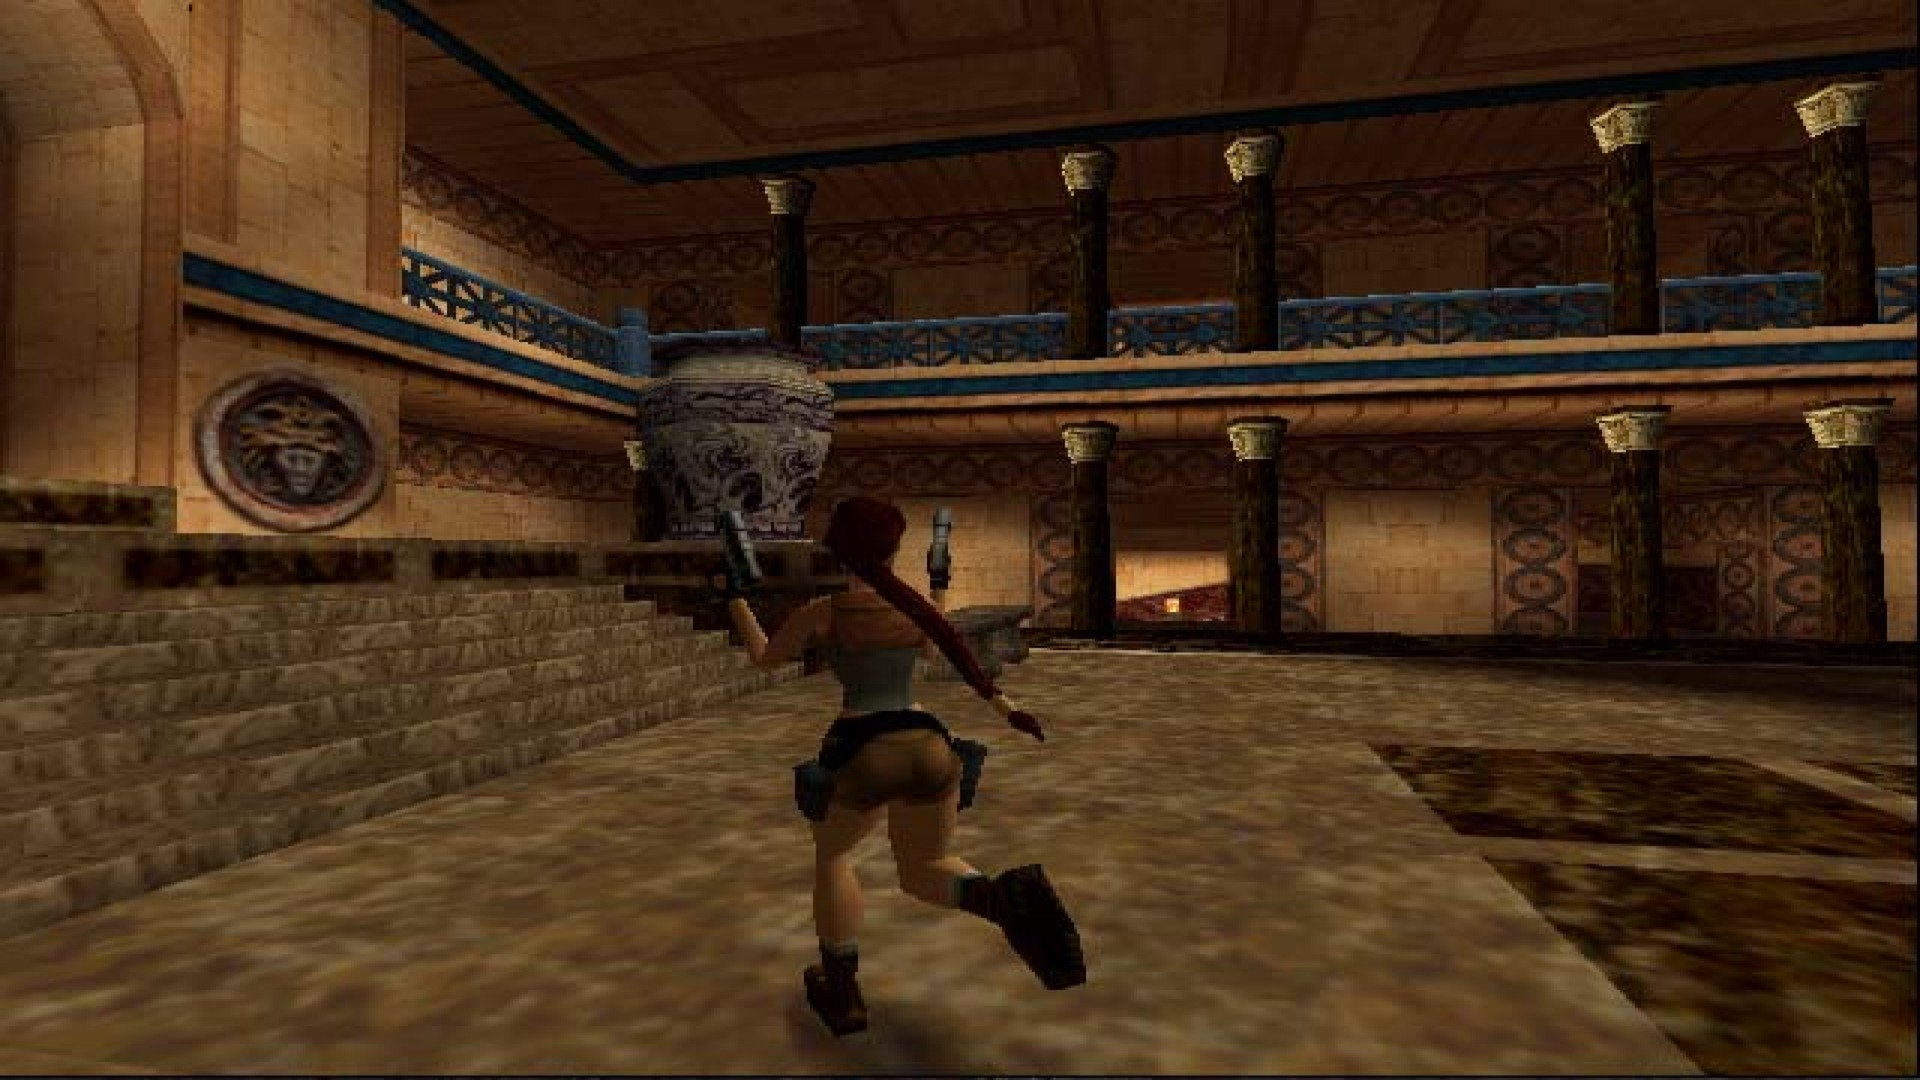 Tomb Raider Iv The Last Revelation On Steam